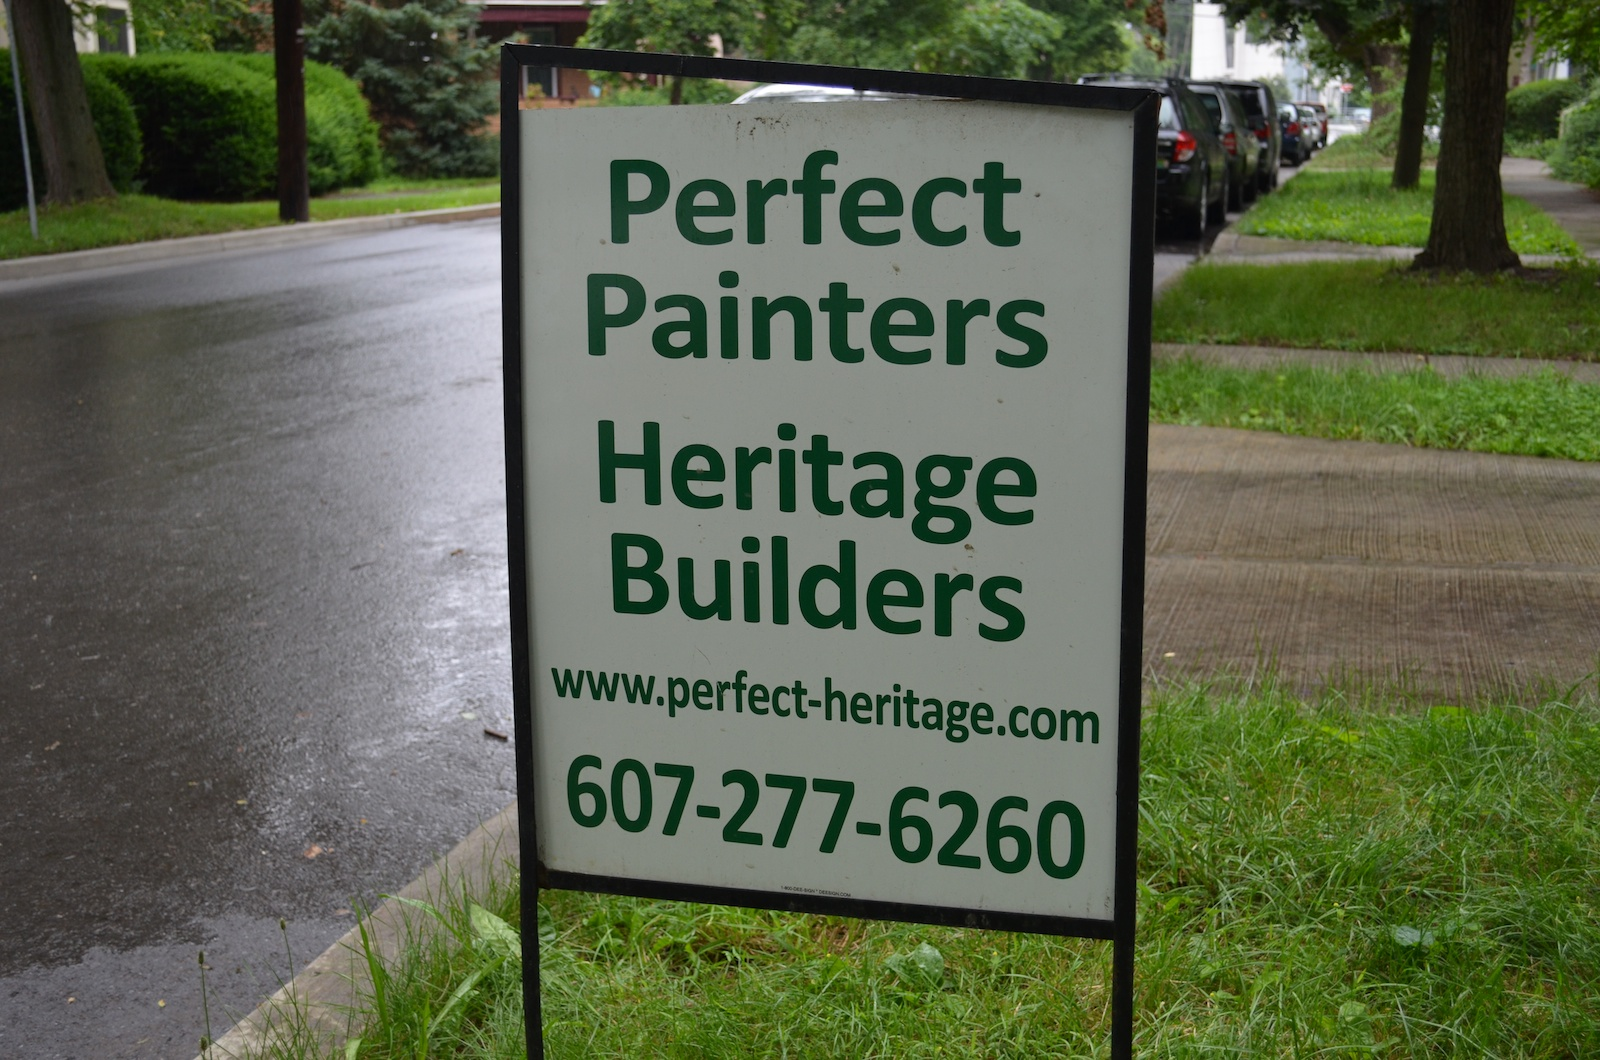 Perfect Painters Heritage Builders sign